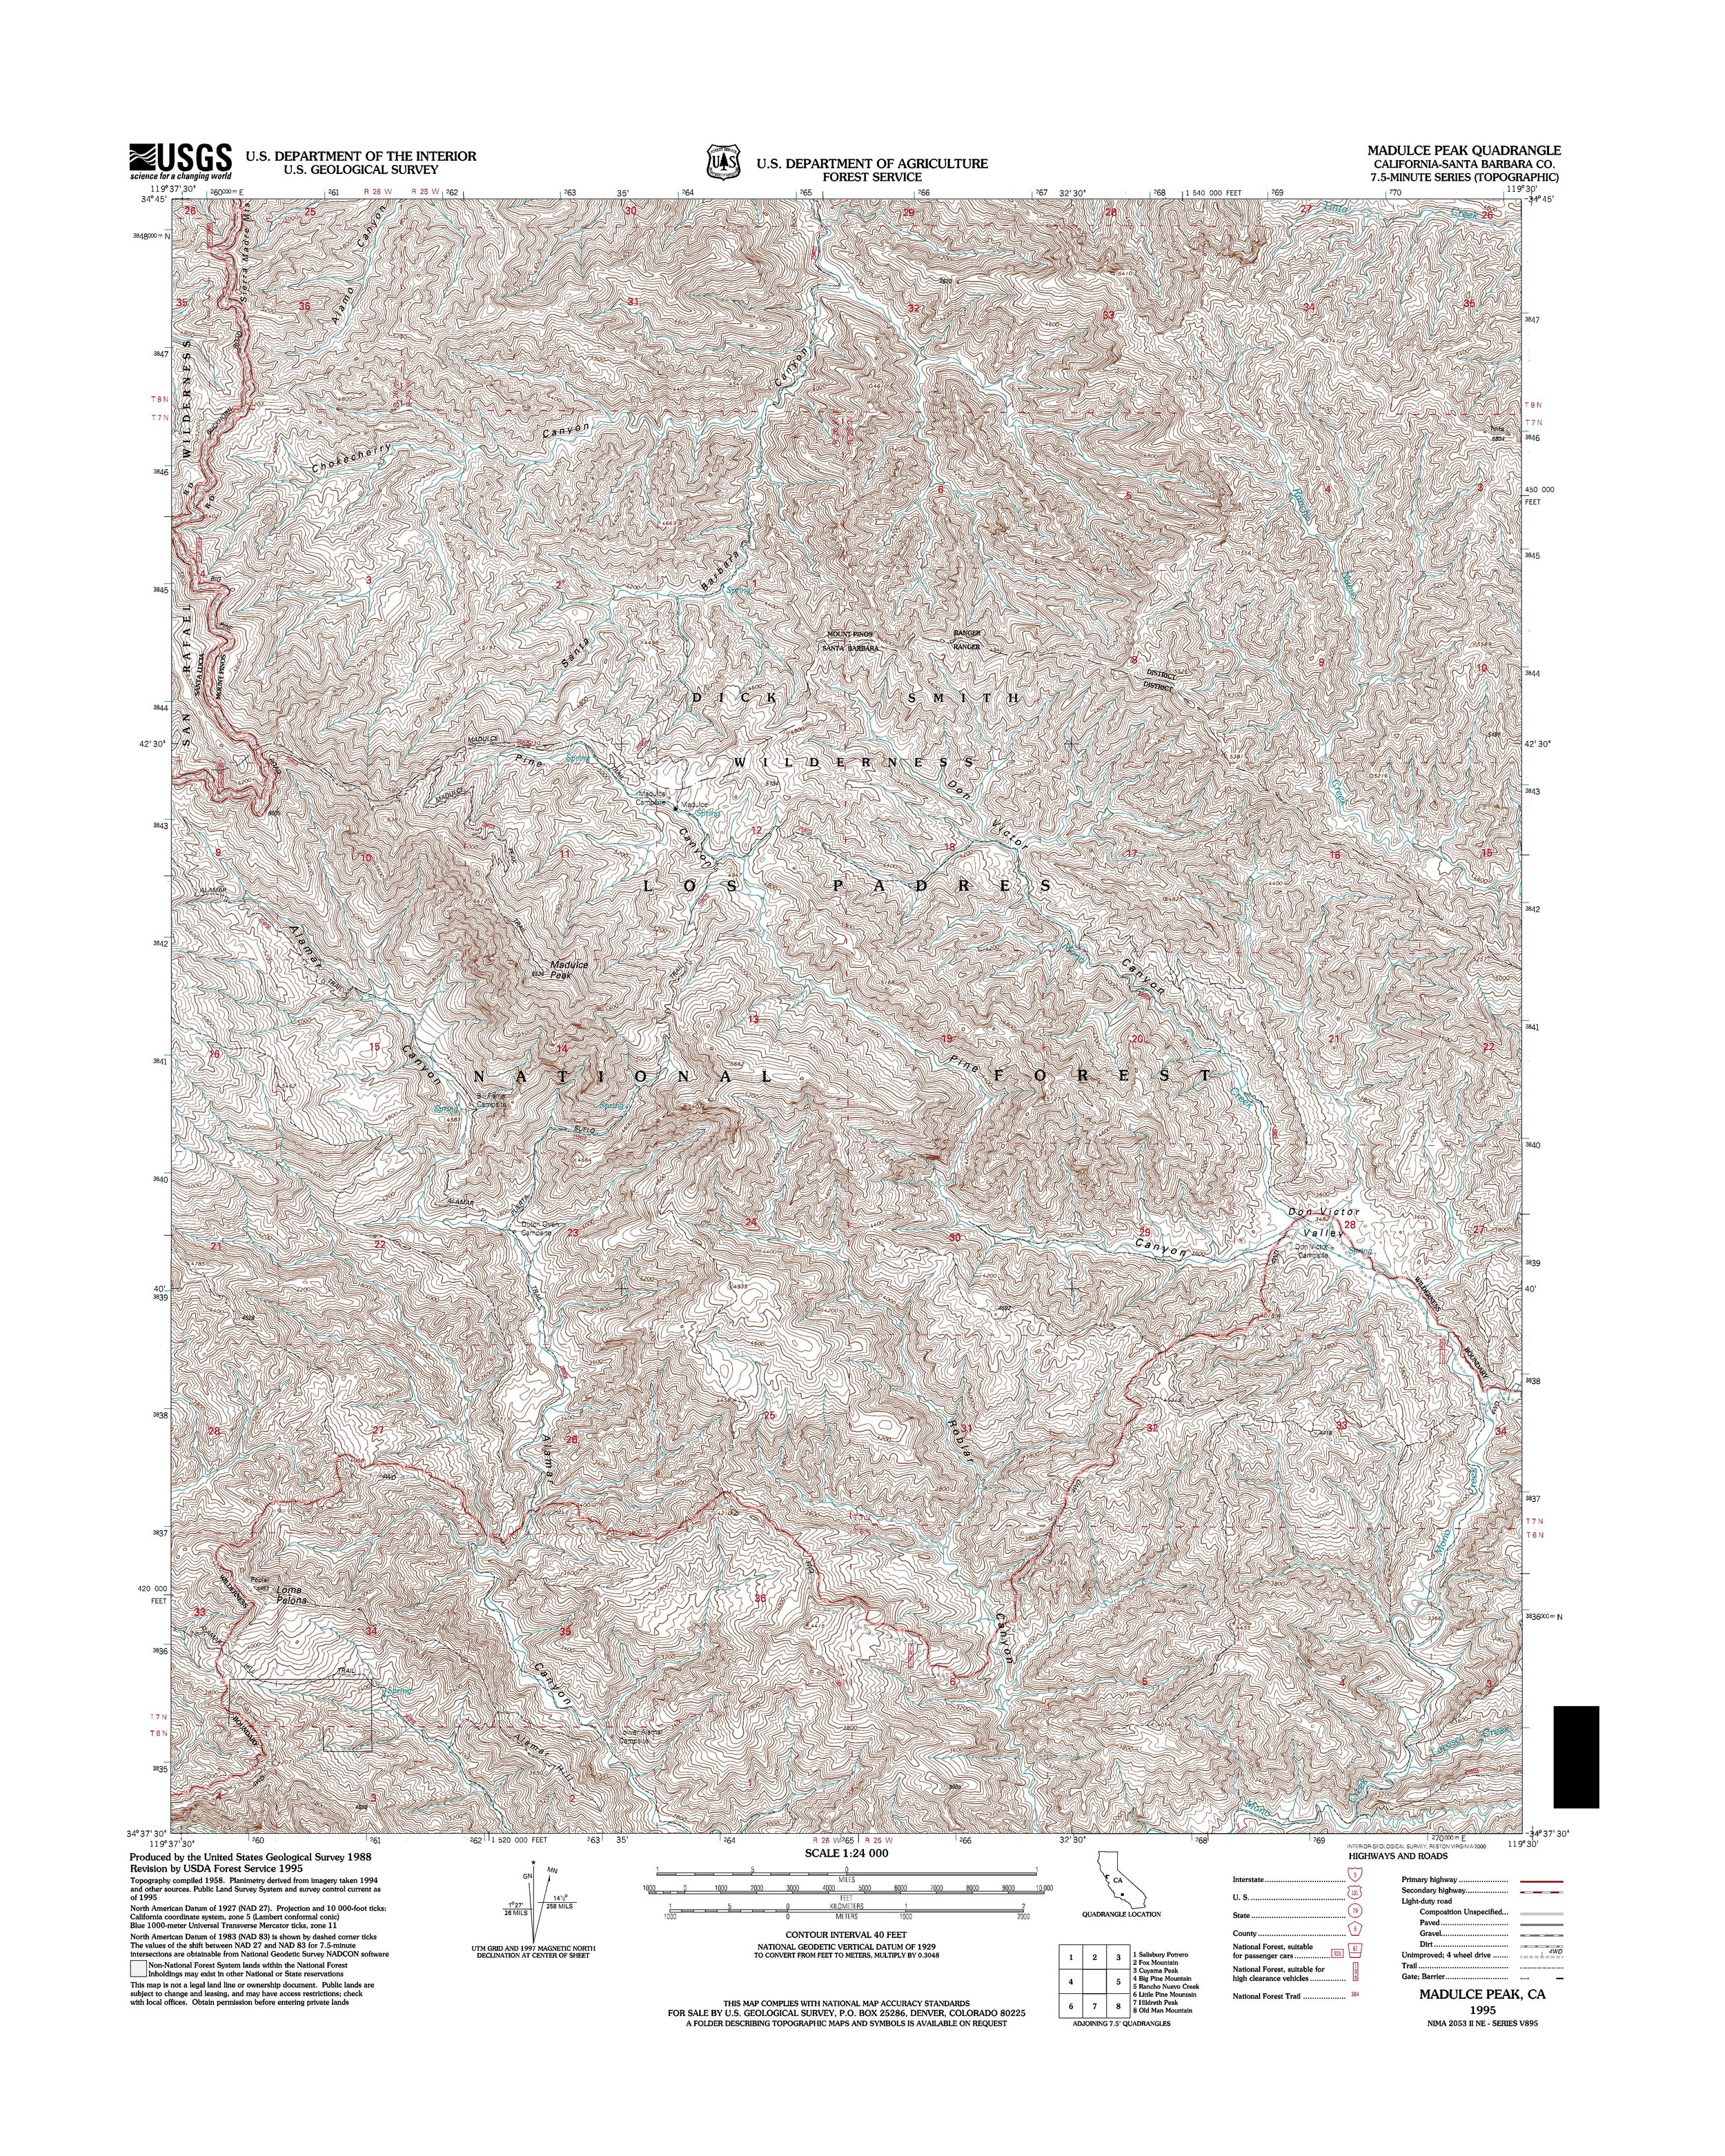 Madulce Peak Topography Map